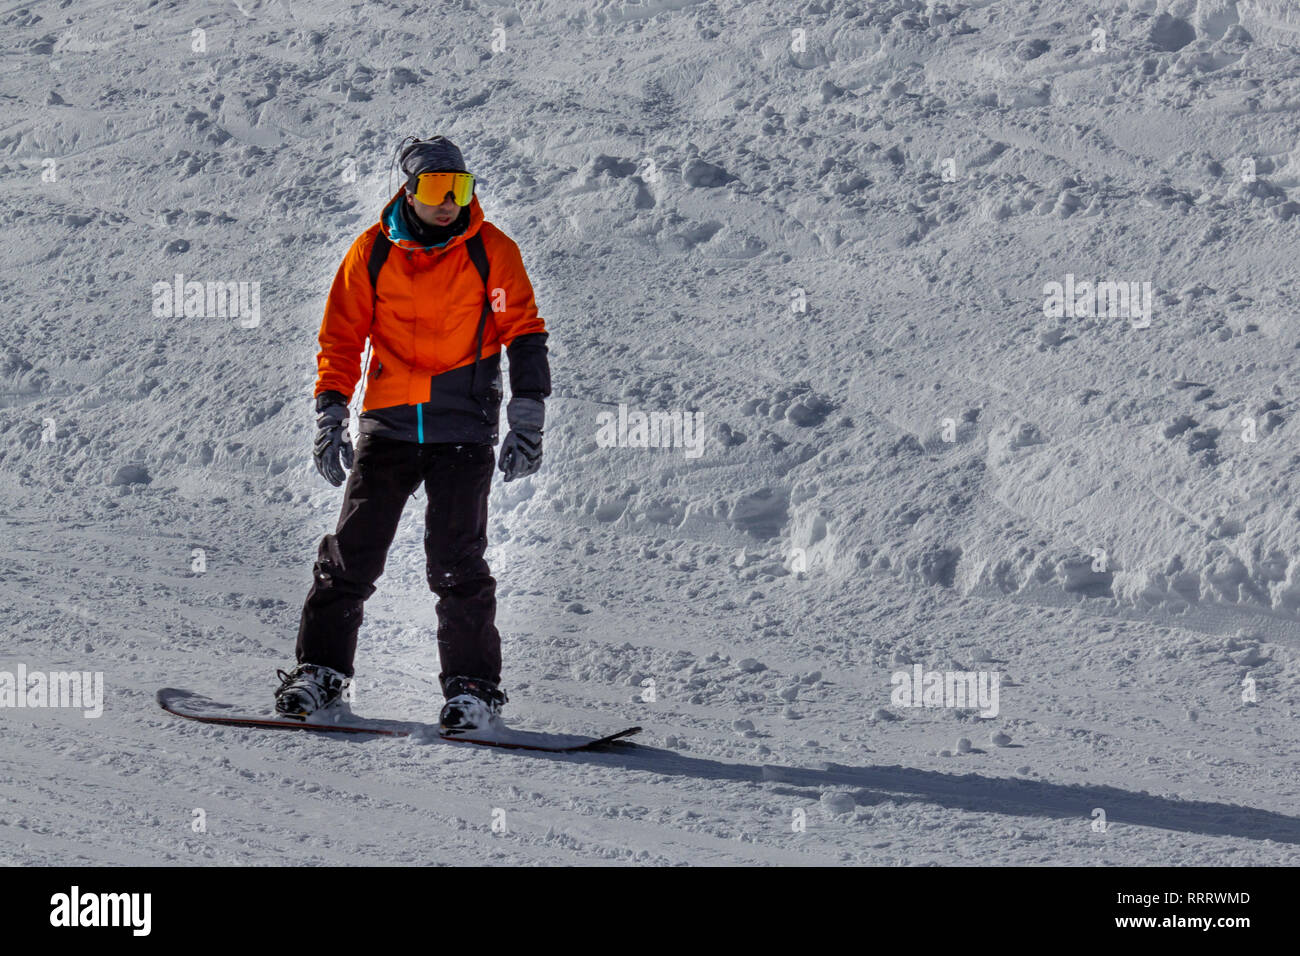 Man skiing with snowboard - Stock Image